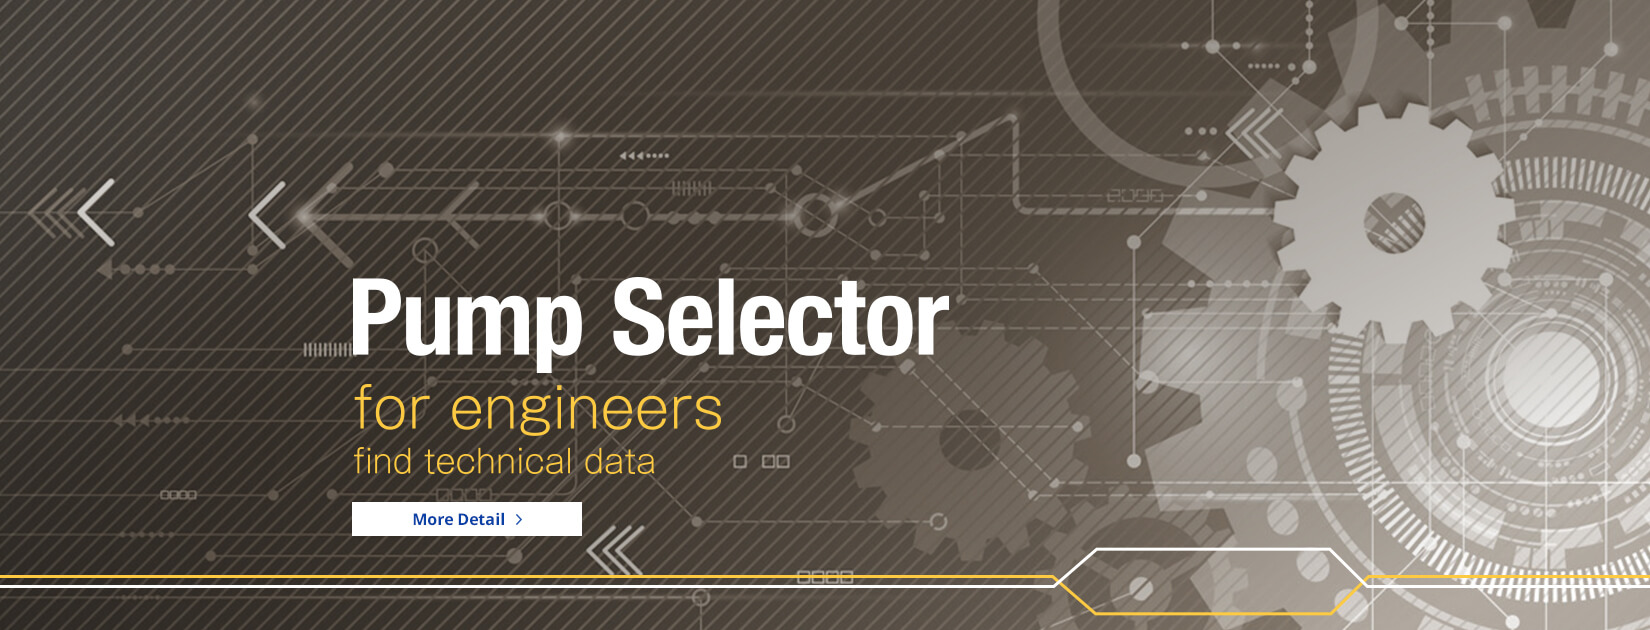 Pump Selector for engineers find technical data